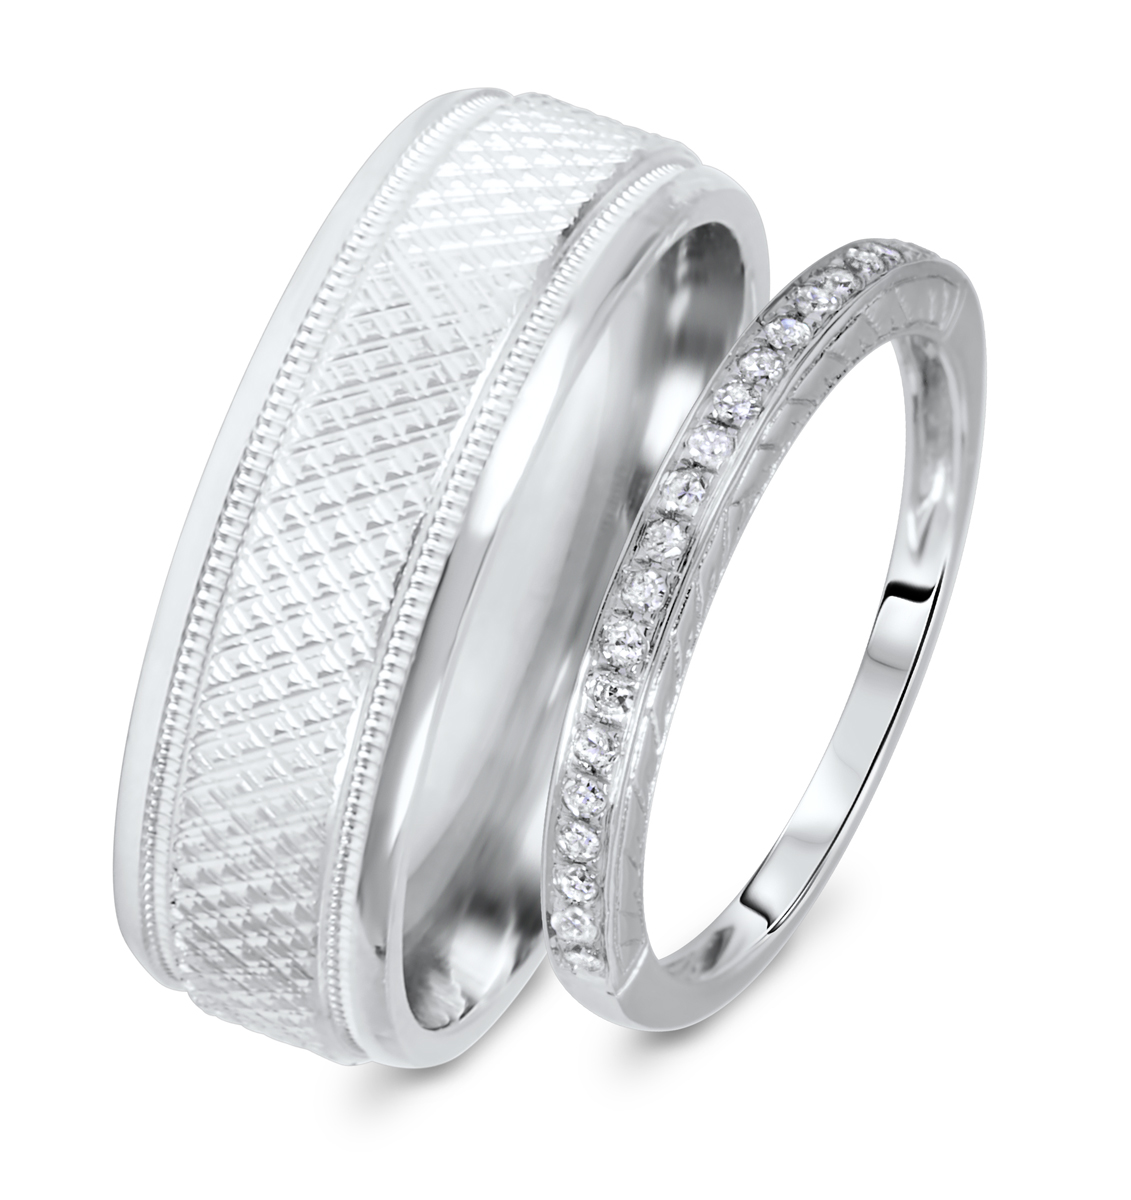 1 8 Carat T W Rounds Cut Diamond His And Hers Wedding Band Set 14k White Gold